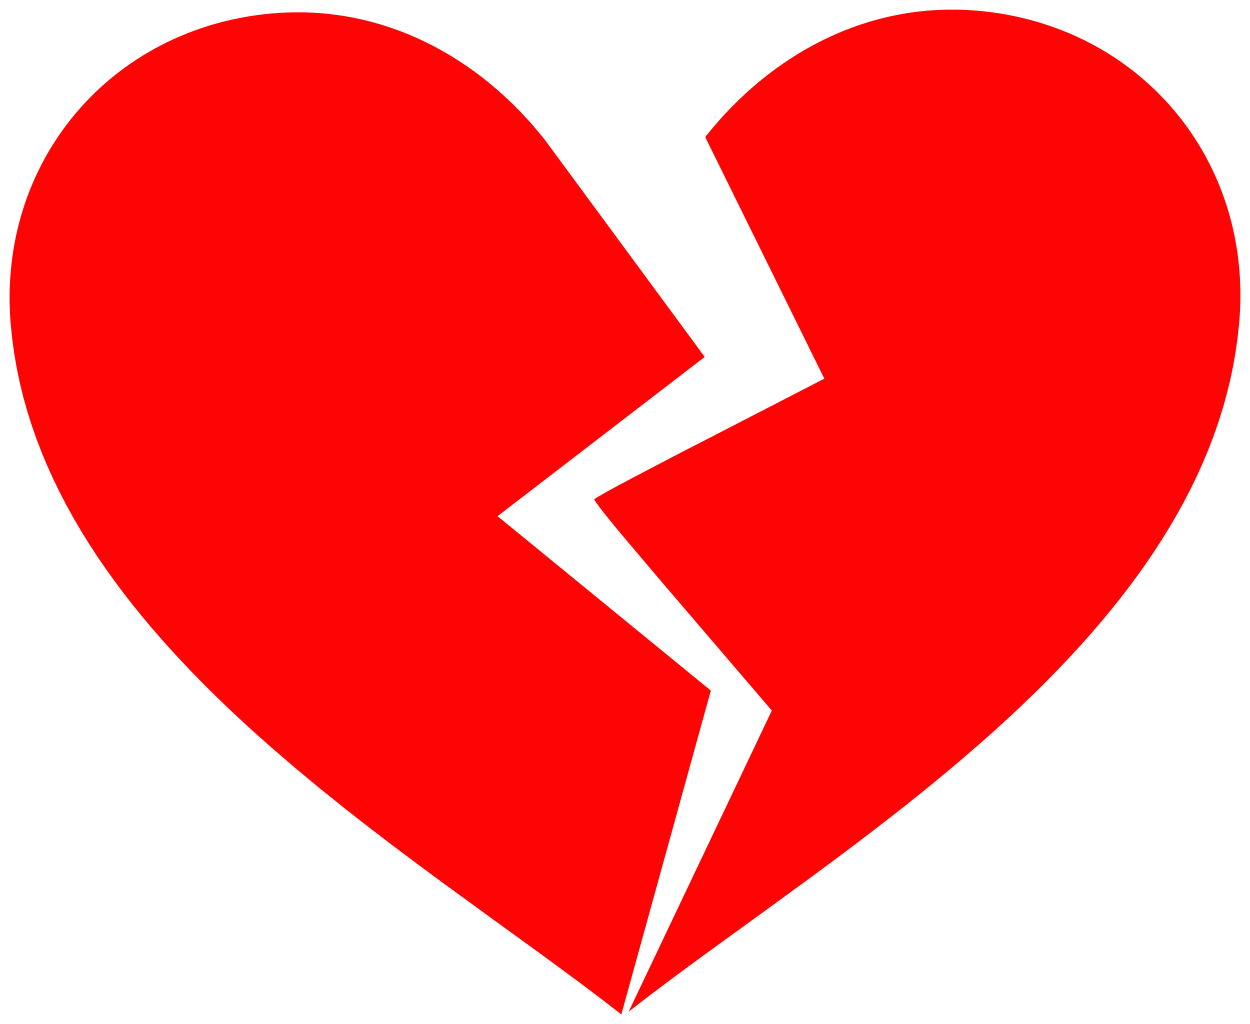 Pixel heart clipart image freeuse stock File:Broken heart.svg - Wikimedia Commons image freeuse stock